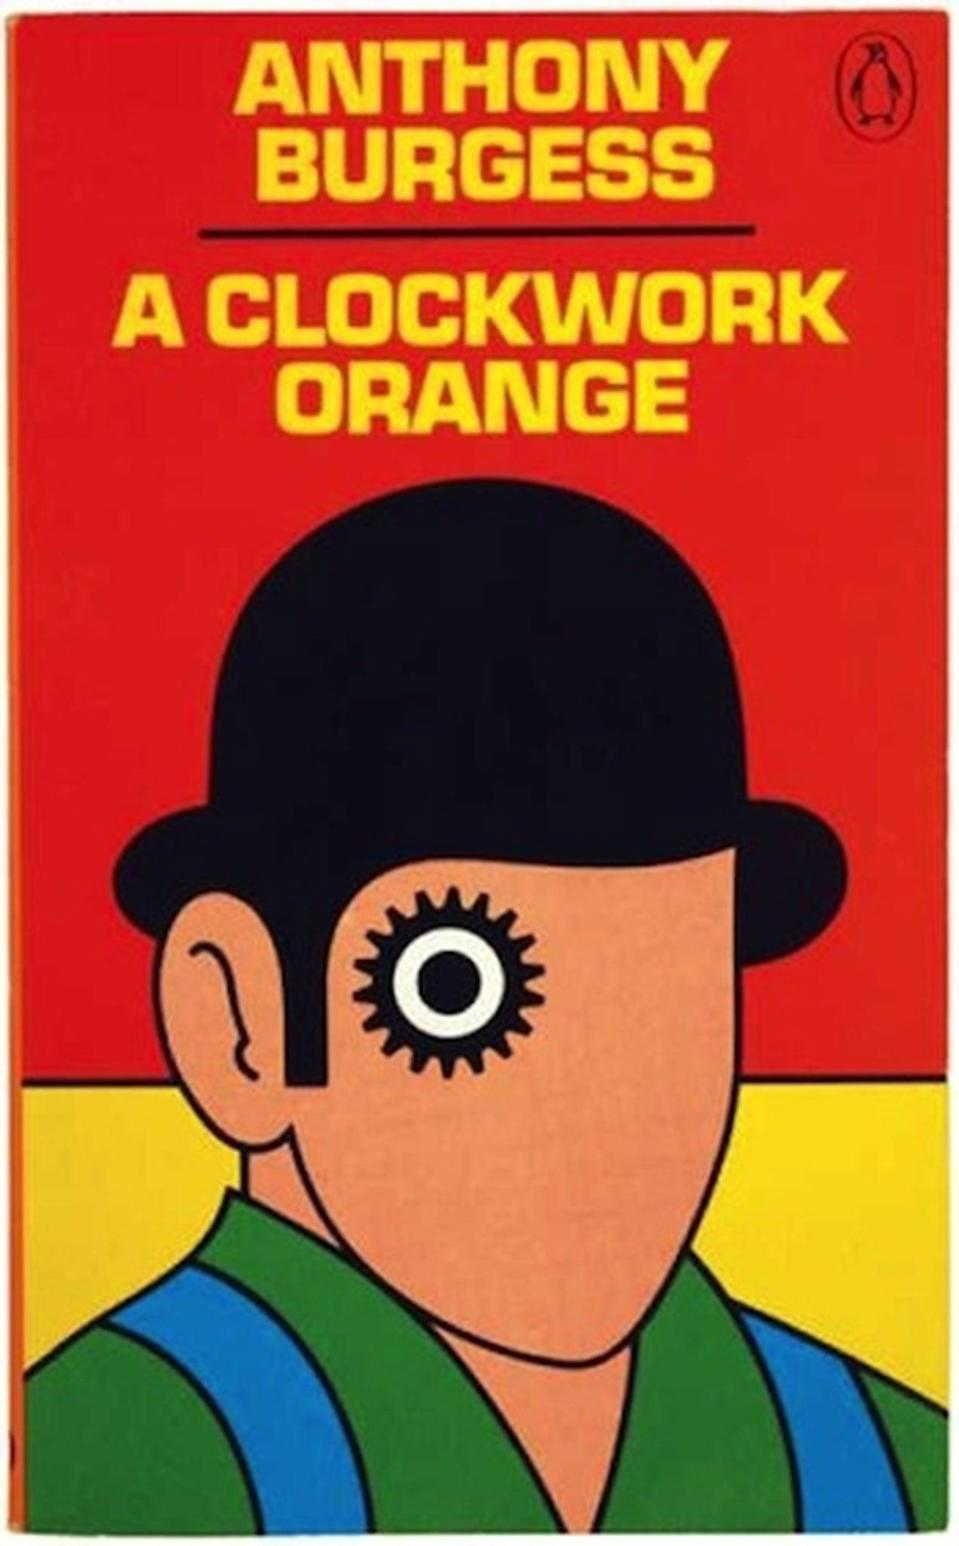 David Pelham came up with this famous cover ten years after A Clockwork Orange was first published in 1962.